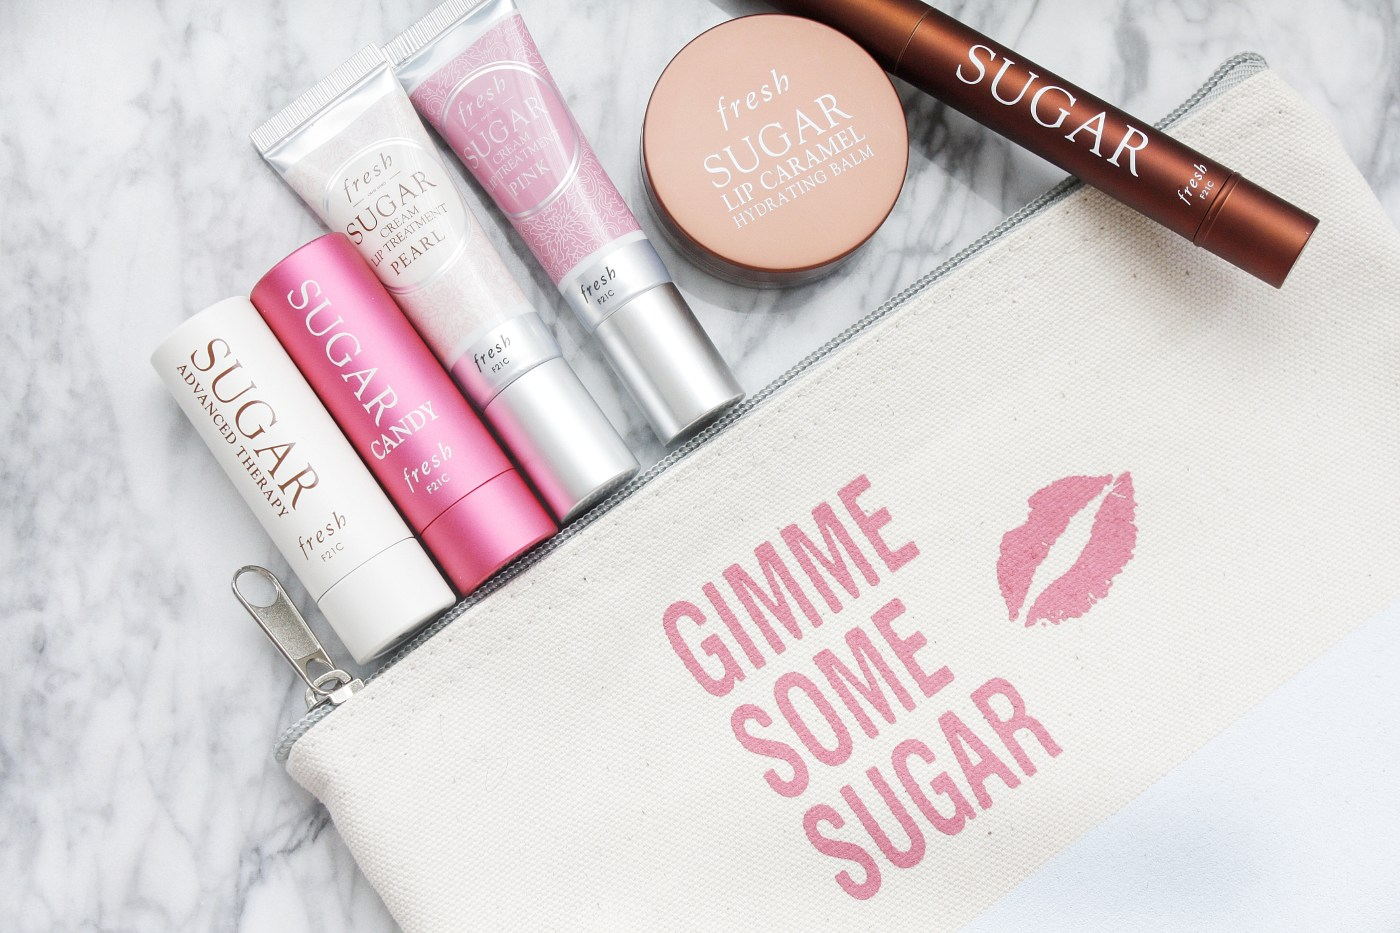 GIMME SOME SUGAR - FRESH SUGAR LIP TREATMENT AND BALM